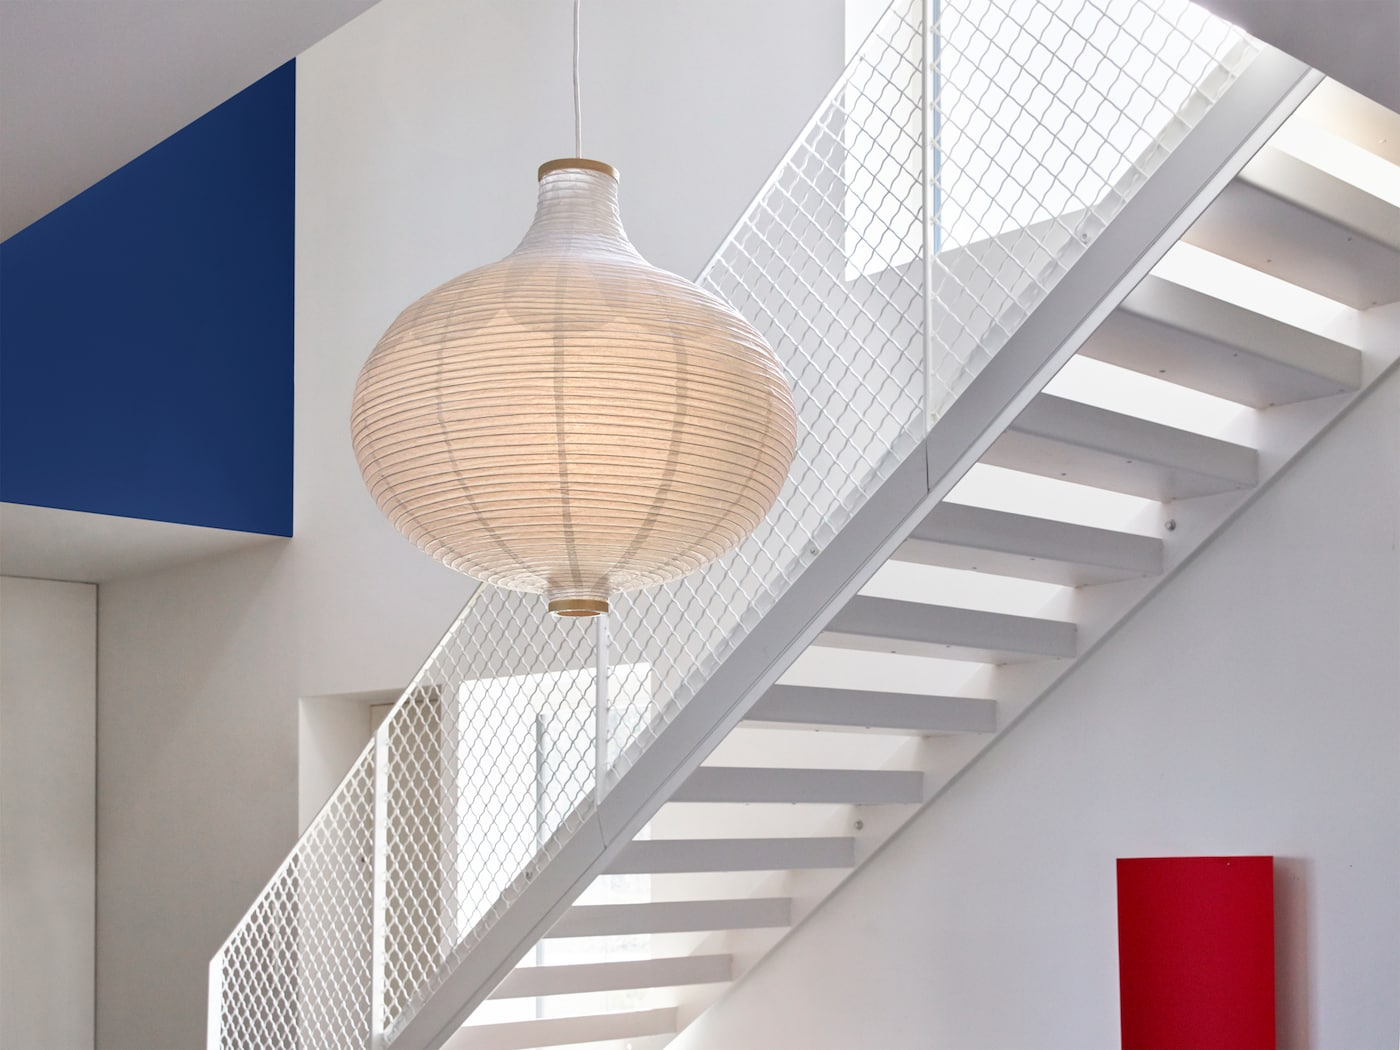 A RISBYN pendant lampshade made in an onion shape with a thin pattern in the rice paper.